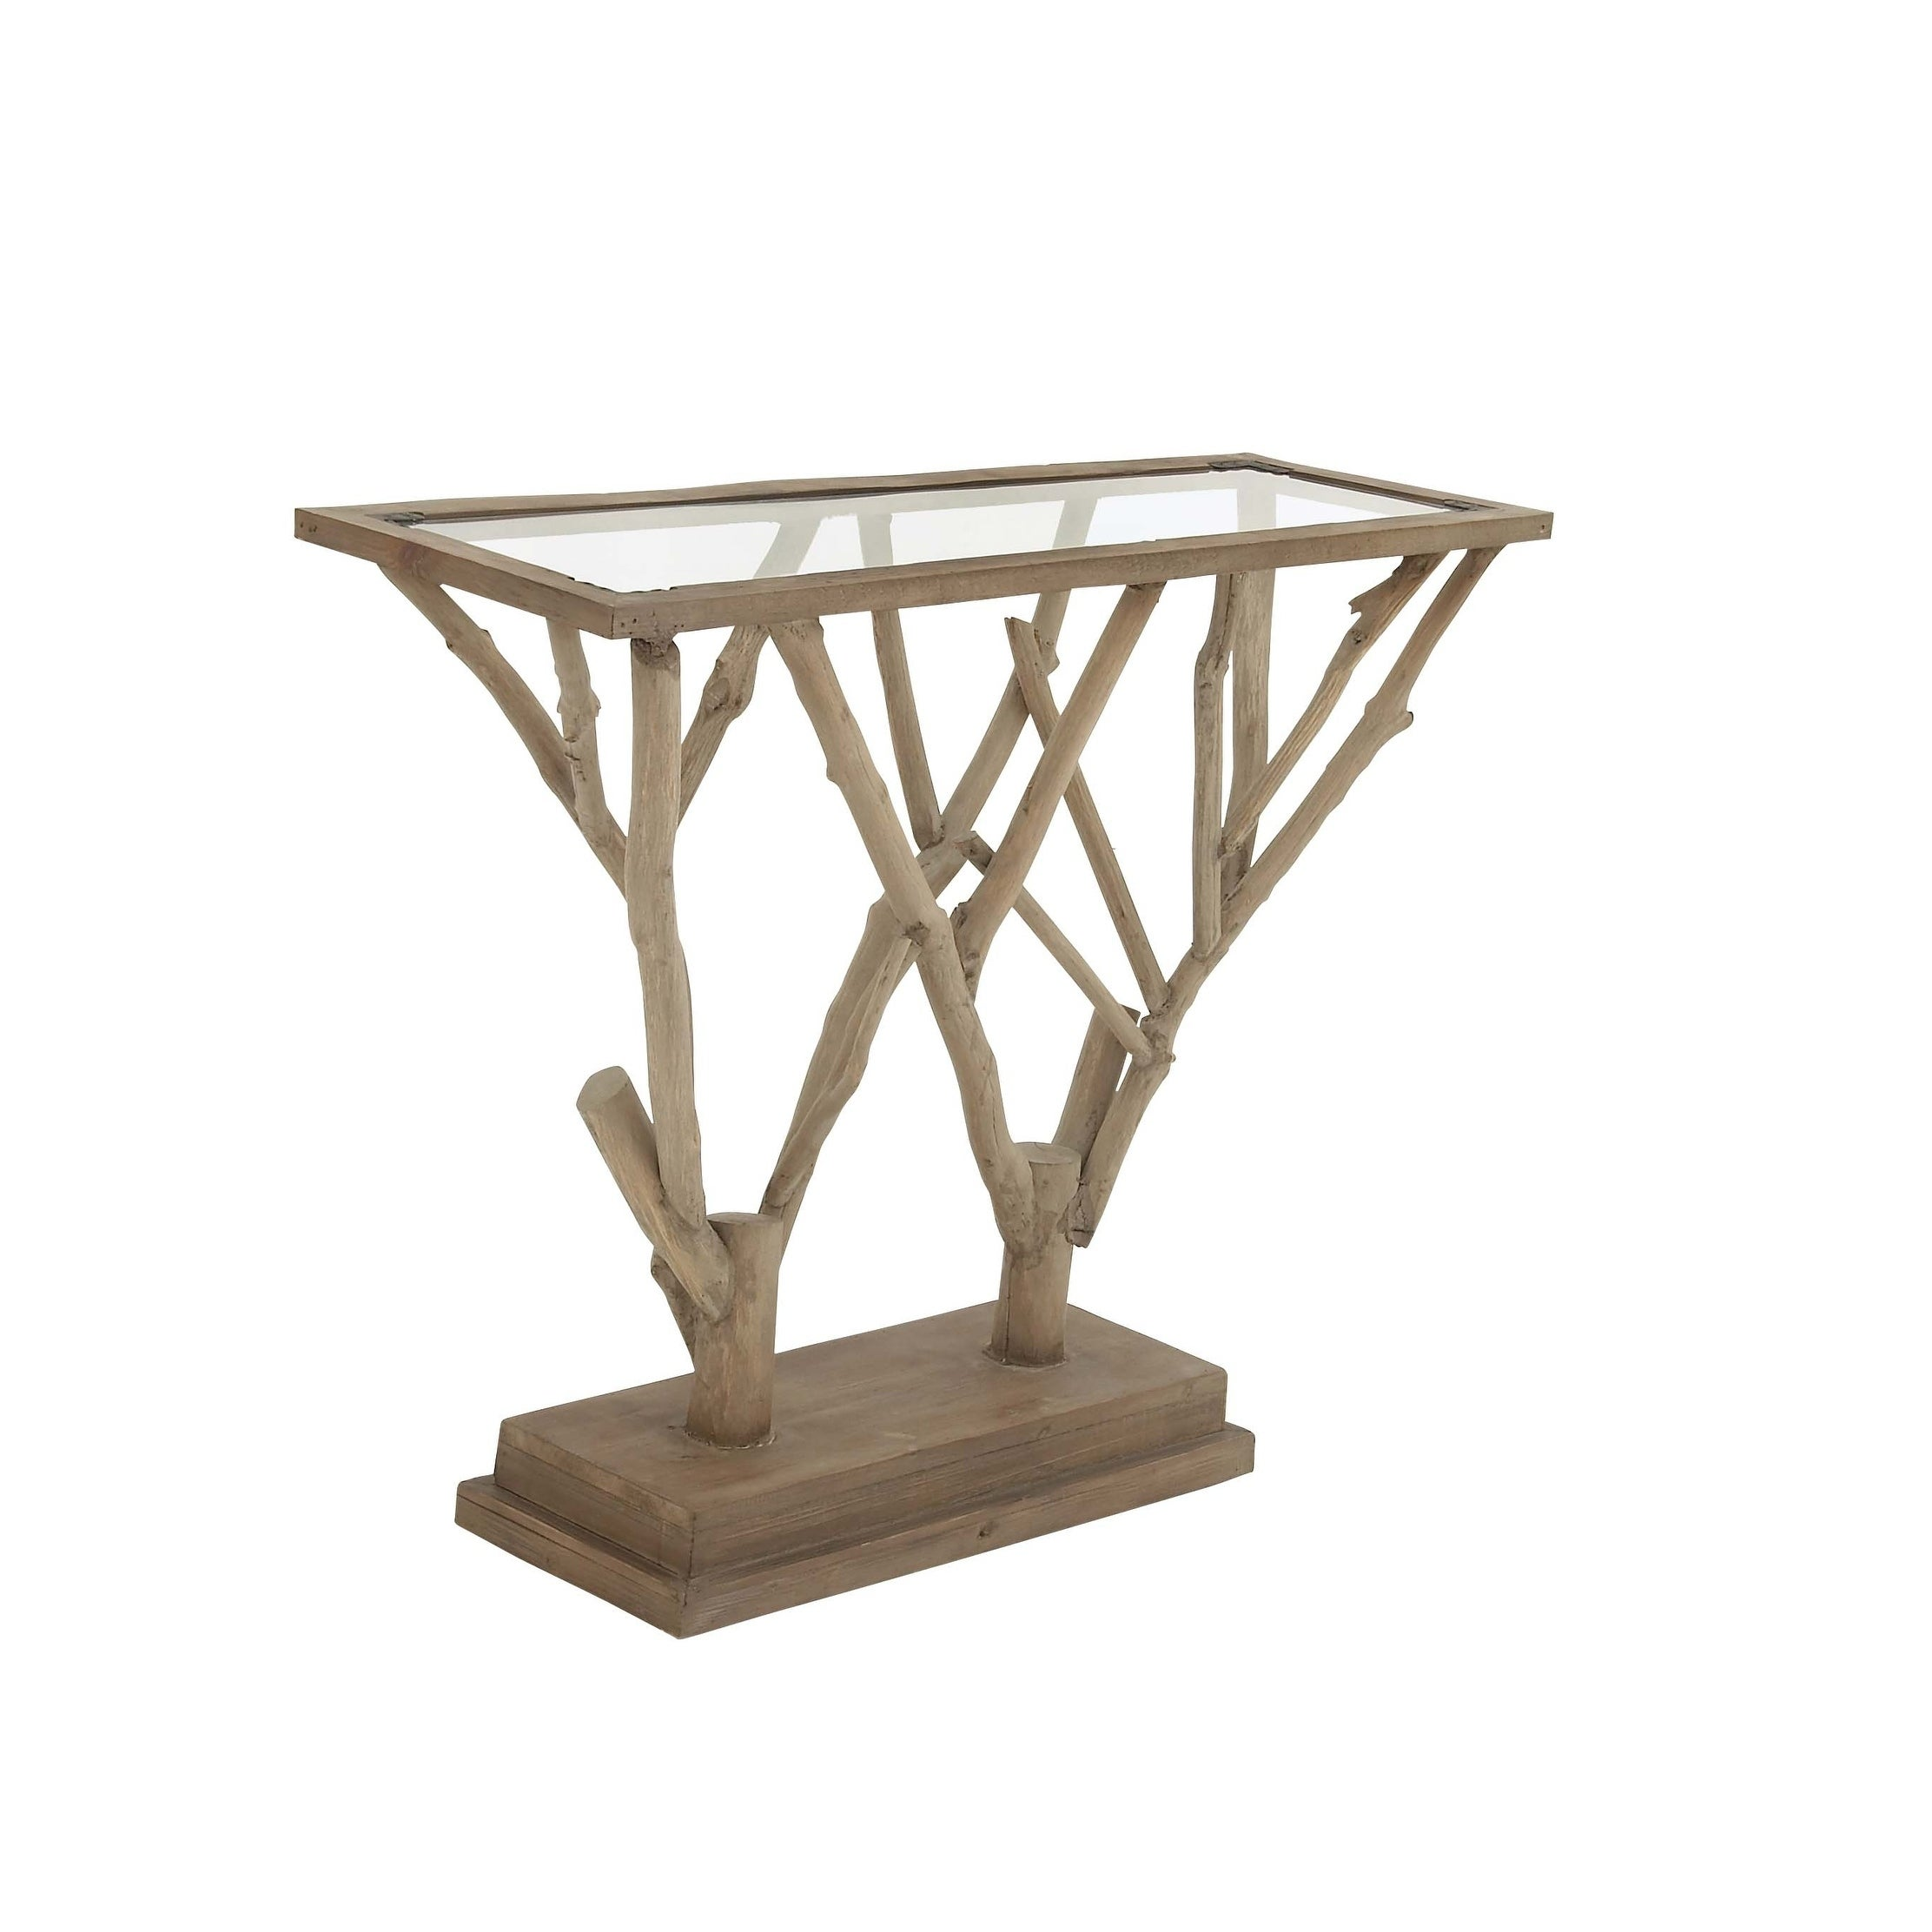 Natural 36 X 45 Inch Branch Design Wooden Console Table By Studio 350 Free Shipping Today 12218901